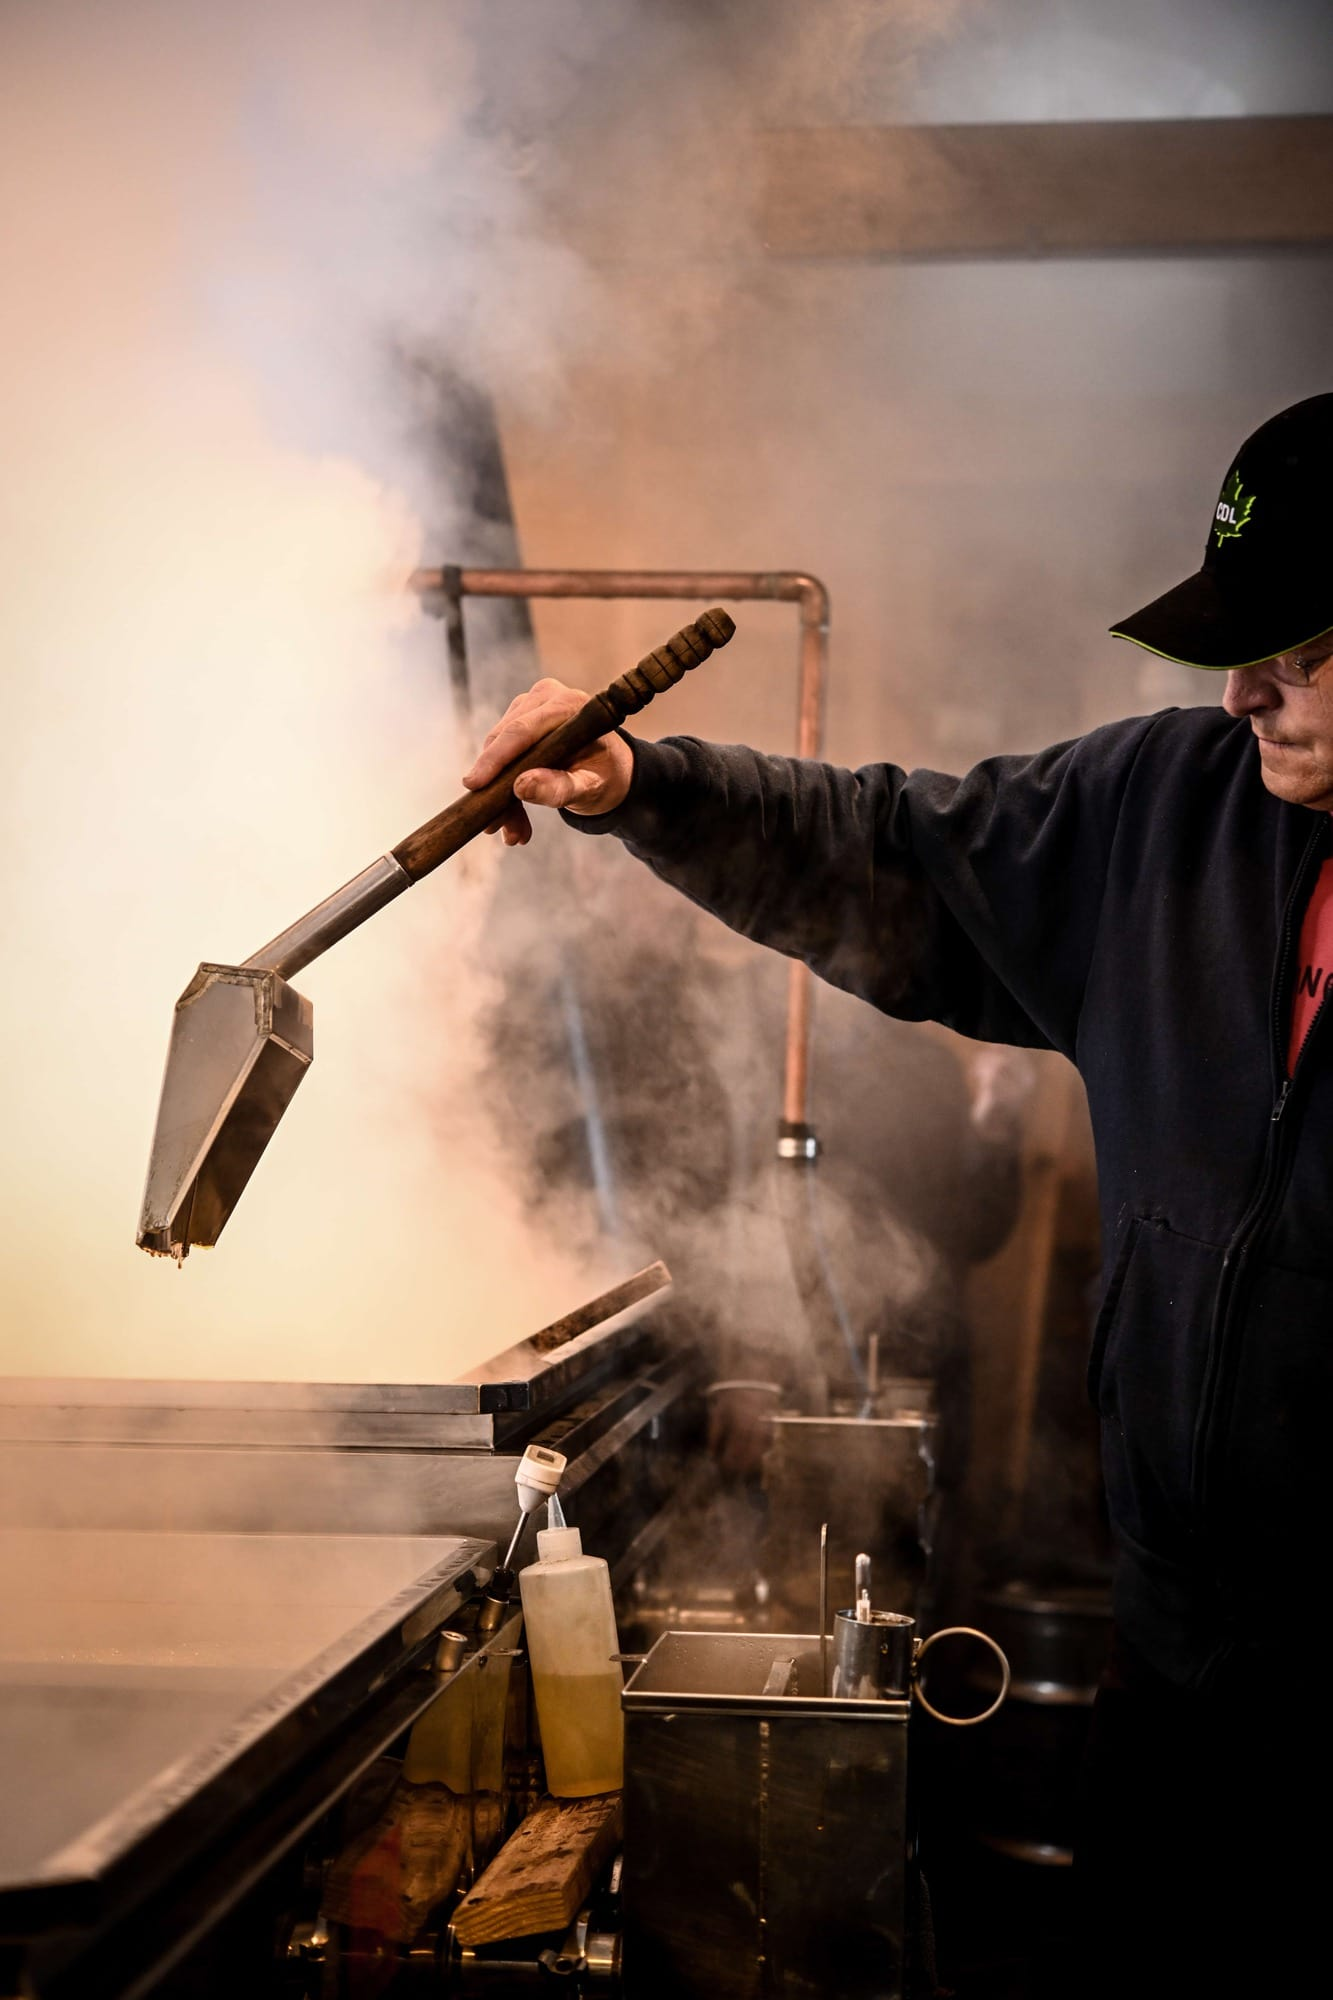 Man in maple sugarhouse testing viscosity of maple syrup